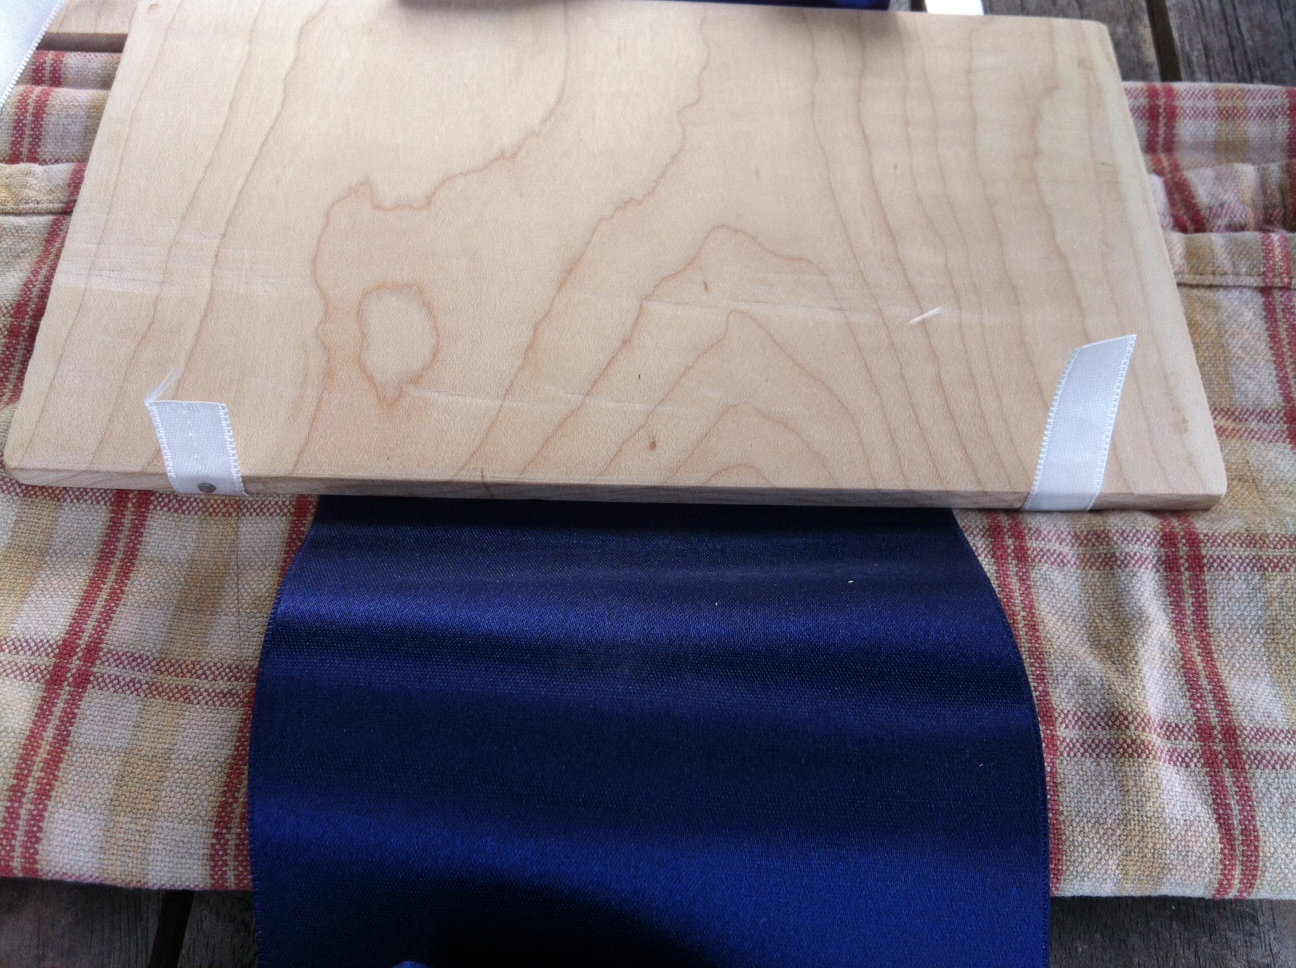 Picture of Attach Ribbons to First Tile, Then Subsequent Tiles.